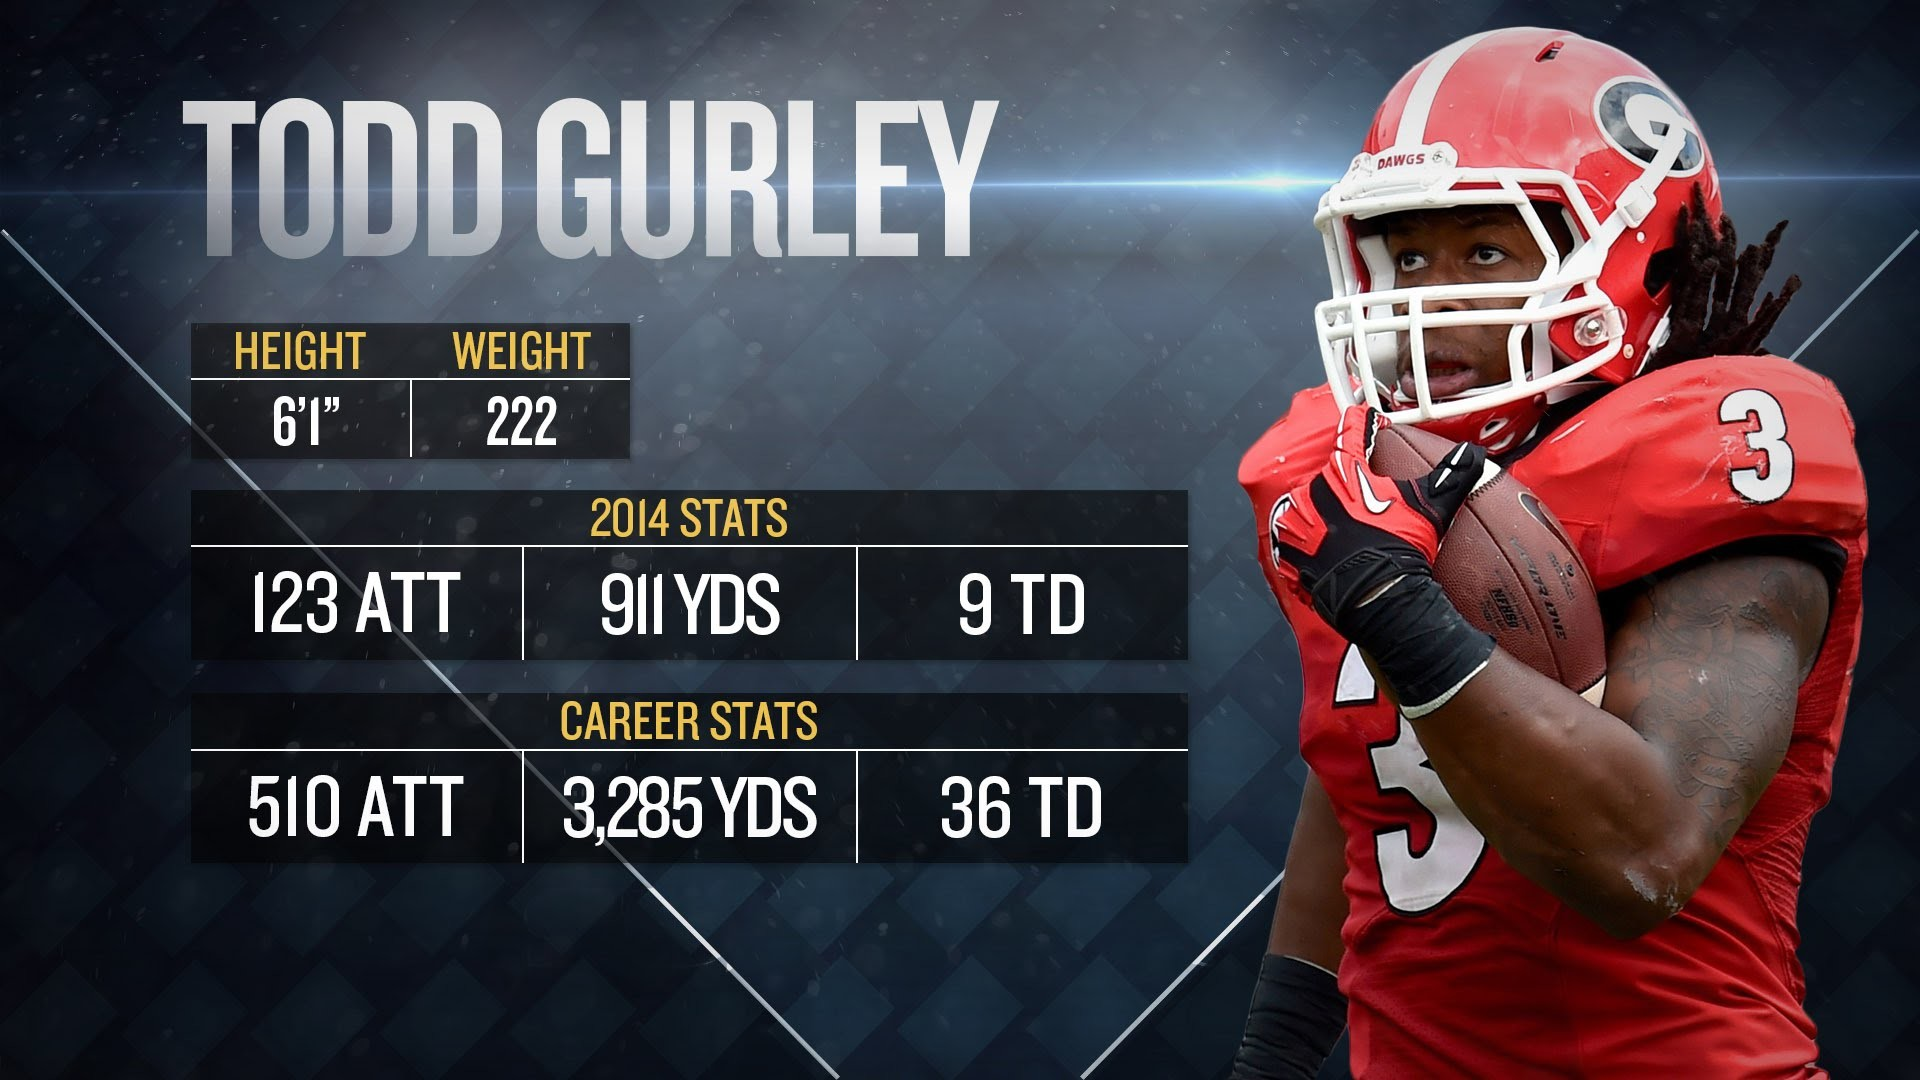 2015 NFL Draft: Todd Gurley scouting report